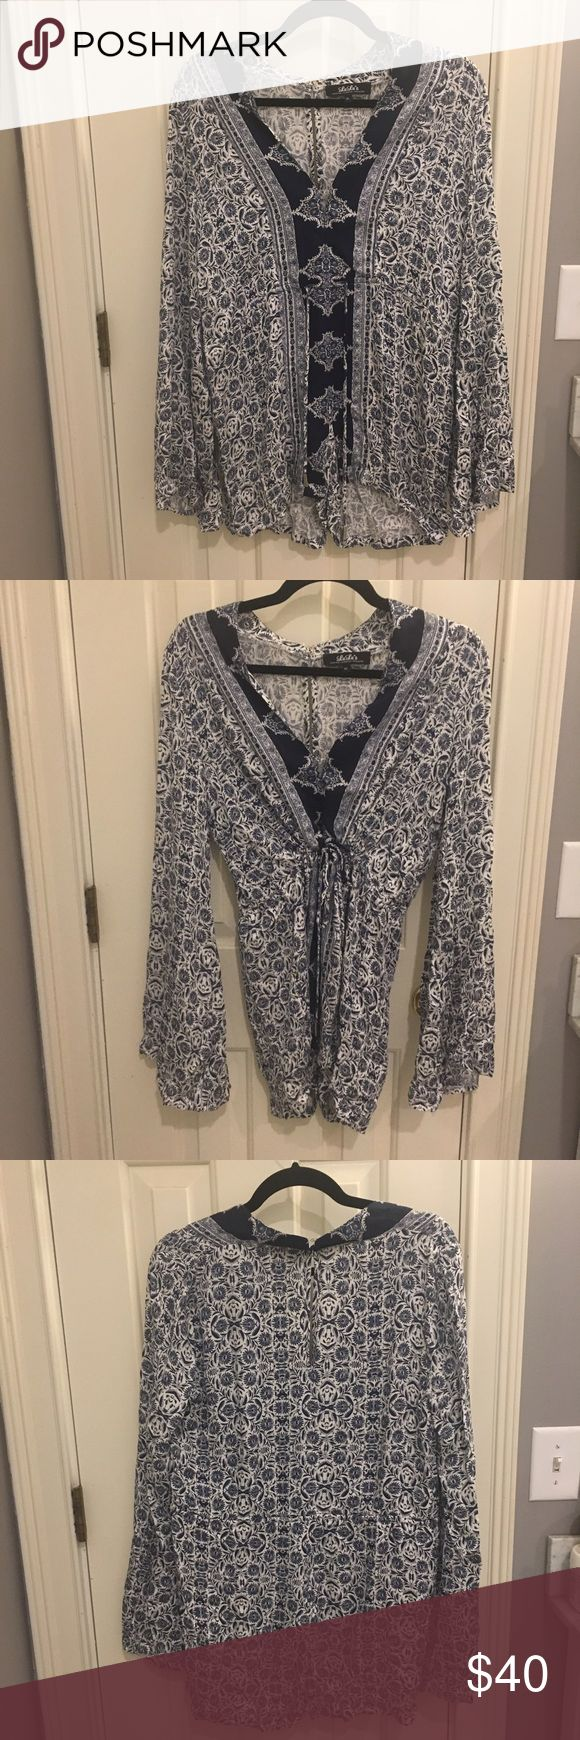 Lulu's Pattern Romper with Adjustable Waist! Super cute patterned long sleeve romper. Perfect for cool summer nights or warm fall days. Never worn! Waist can be adjusted for a looser or more cinched fit! Price is negotiable. Lulu's Pants Jumpsuits & Rompers